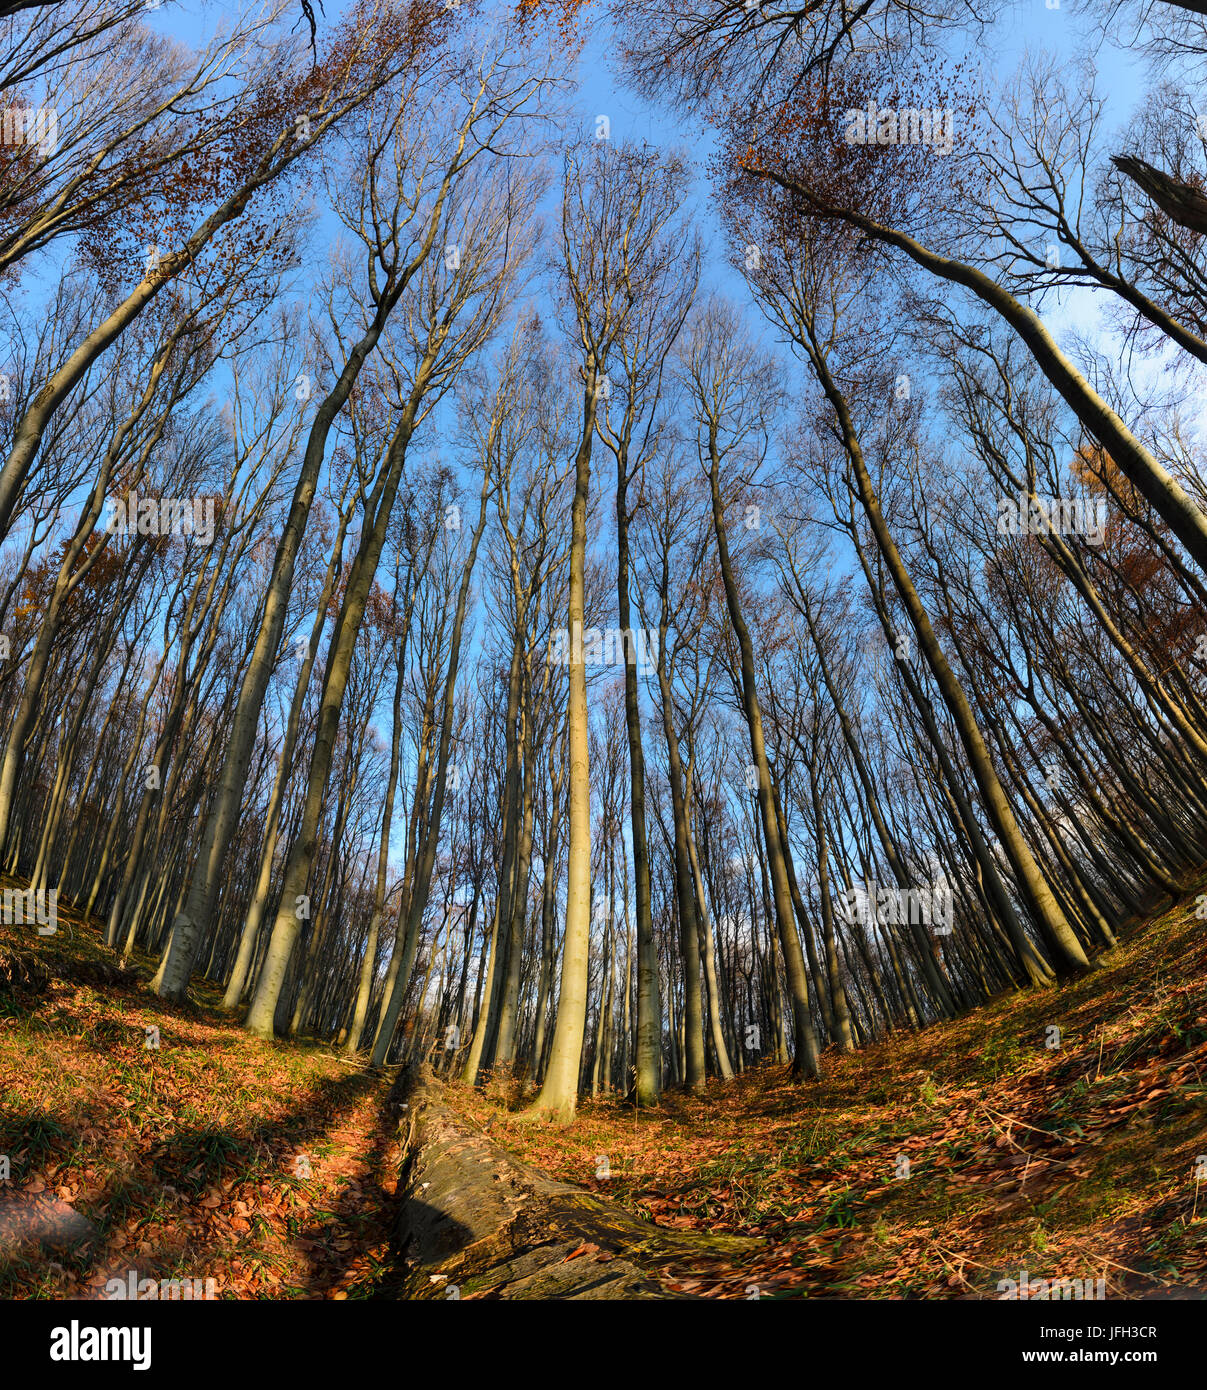 Primeval forest with fallen trees, Austria, Lower Austria, Viennese wood, Mauerbach - Stock Image